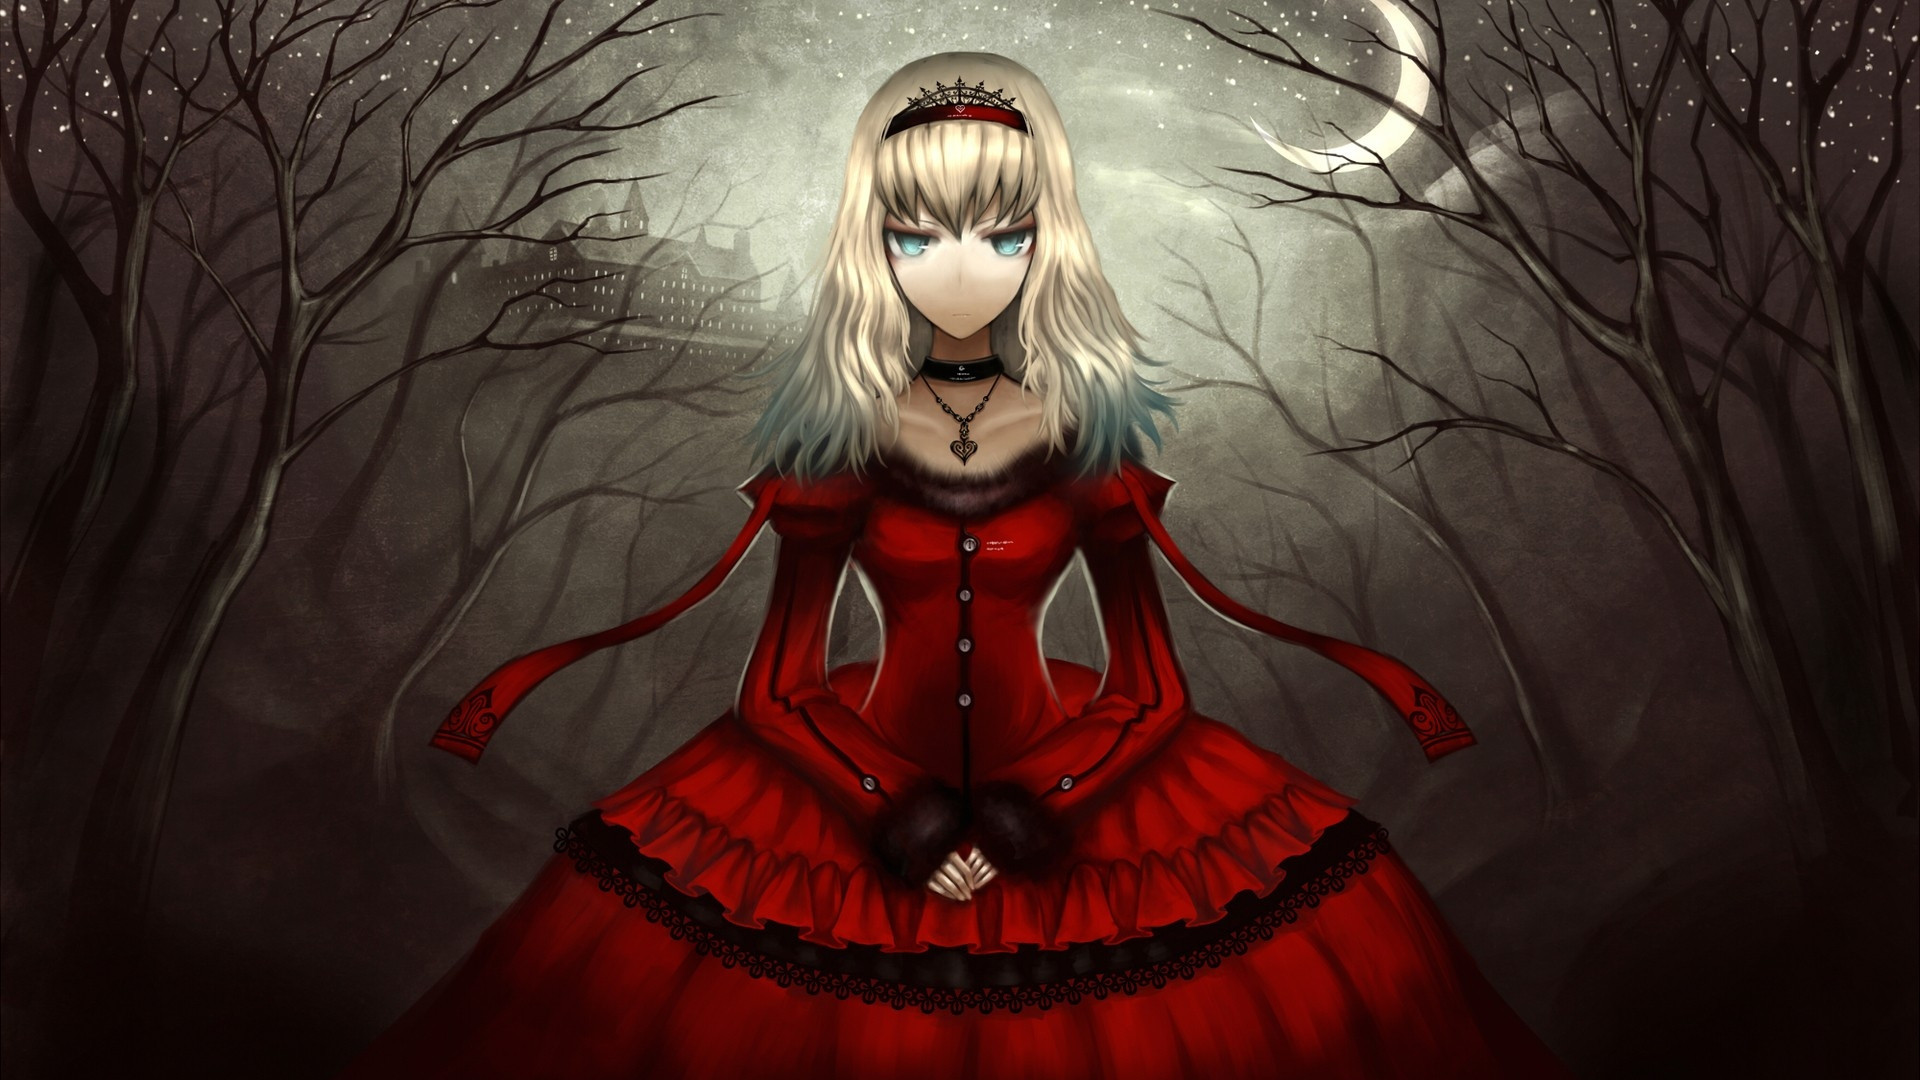 Res: 1920x1080, Download Anime HD Wallpapers Background Image girl dress black gothic  castle night darkness 9865